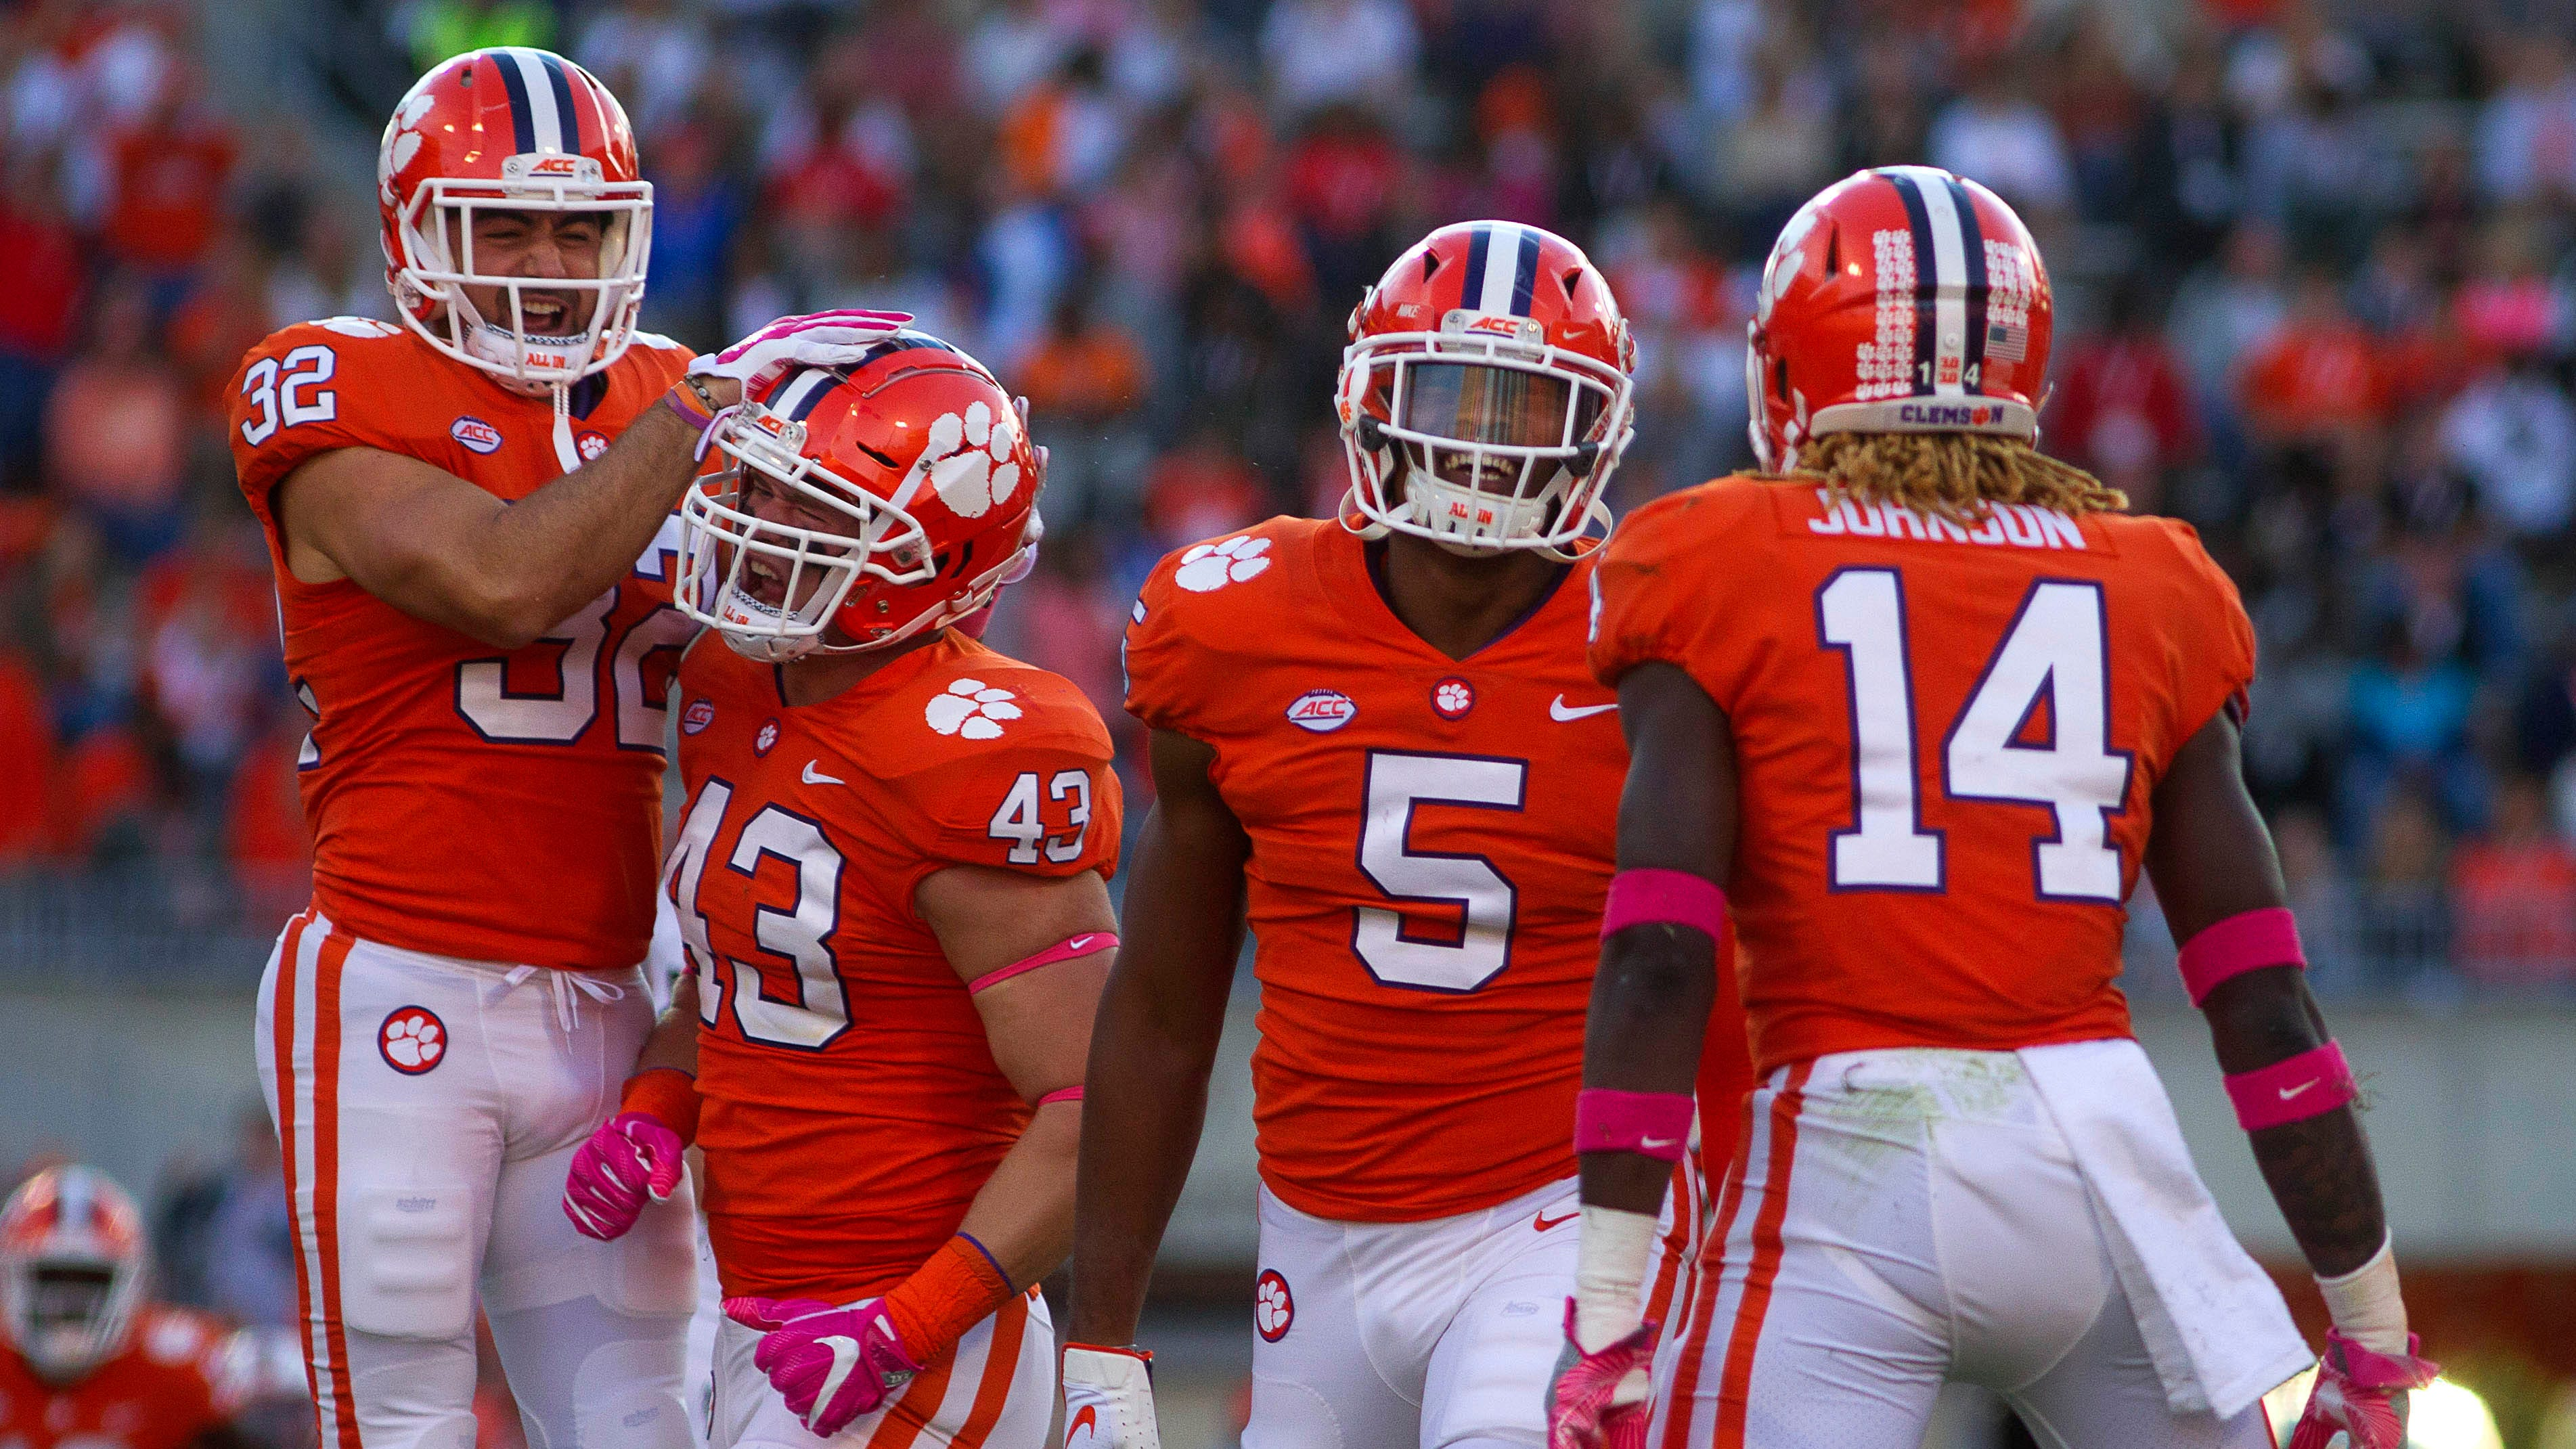 Safety Kyle Cote (32), linebacker Chad Smith (43), linebacker Shaq Smith (5), and safety Denzel Johnson (14) celebrate during another win for unbeaten Clemson.